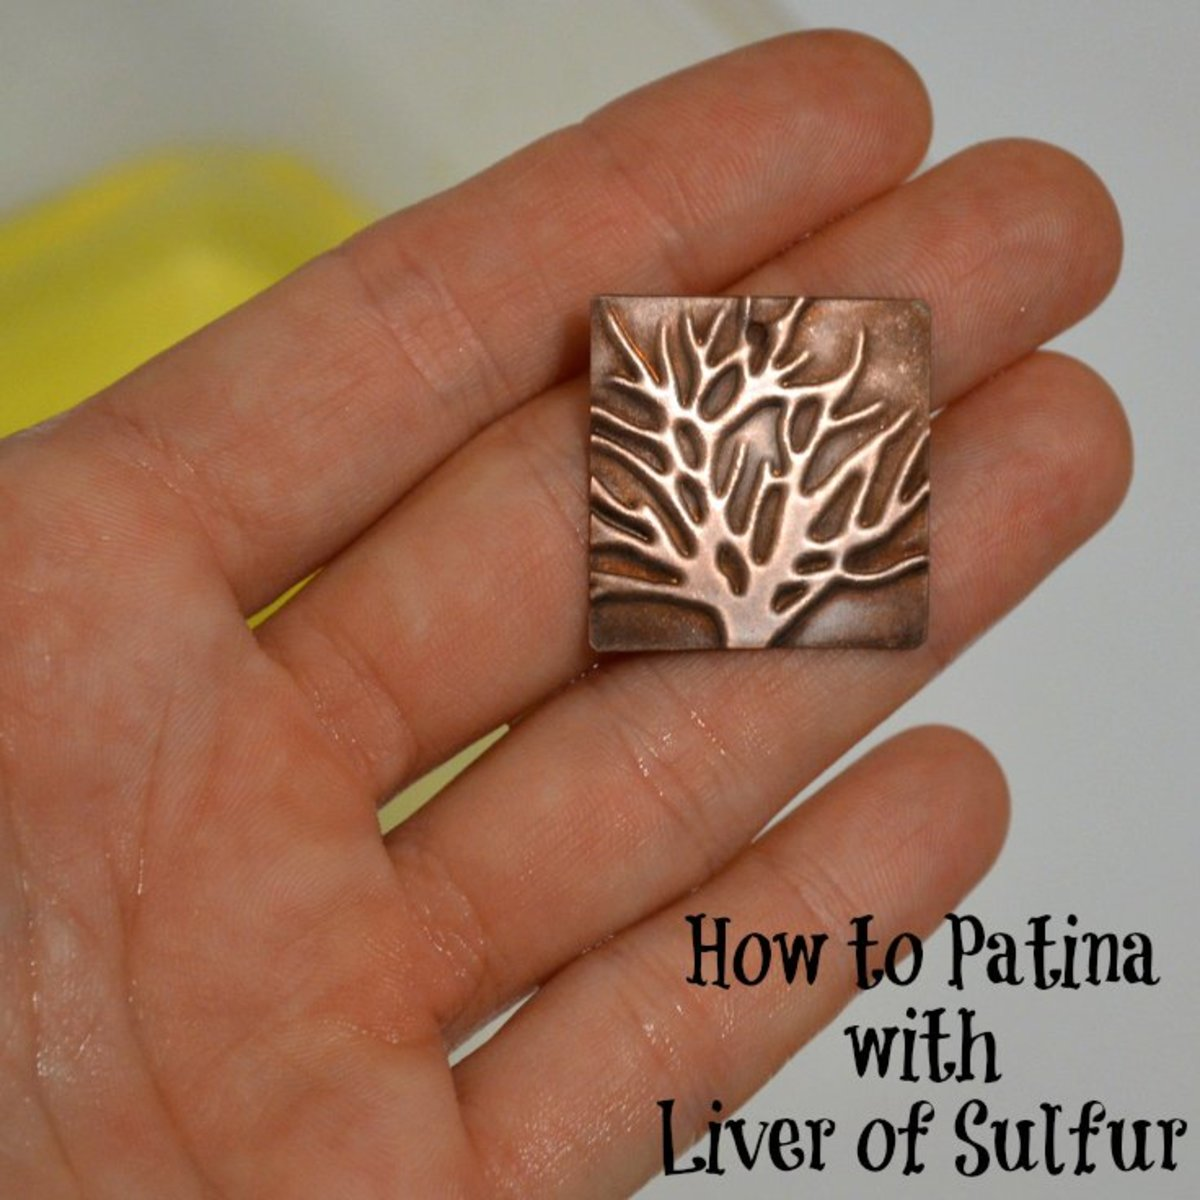 How to Patina Copper and Brass with Liver of Sulfur